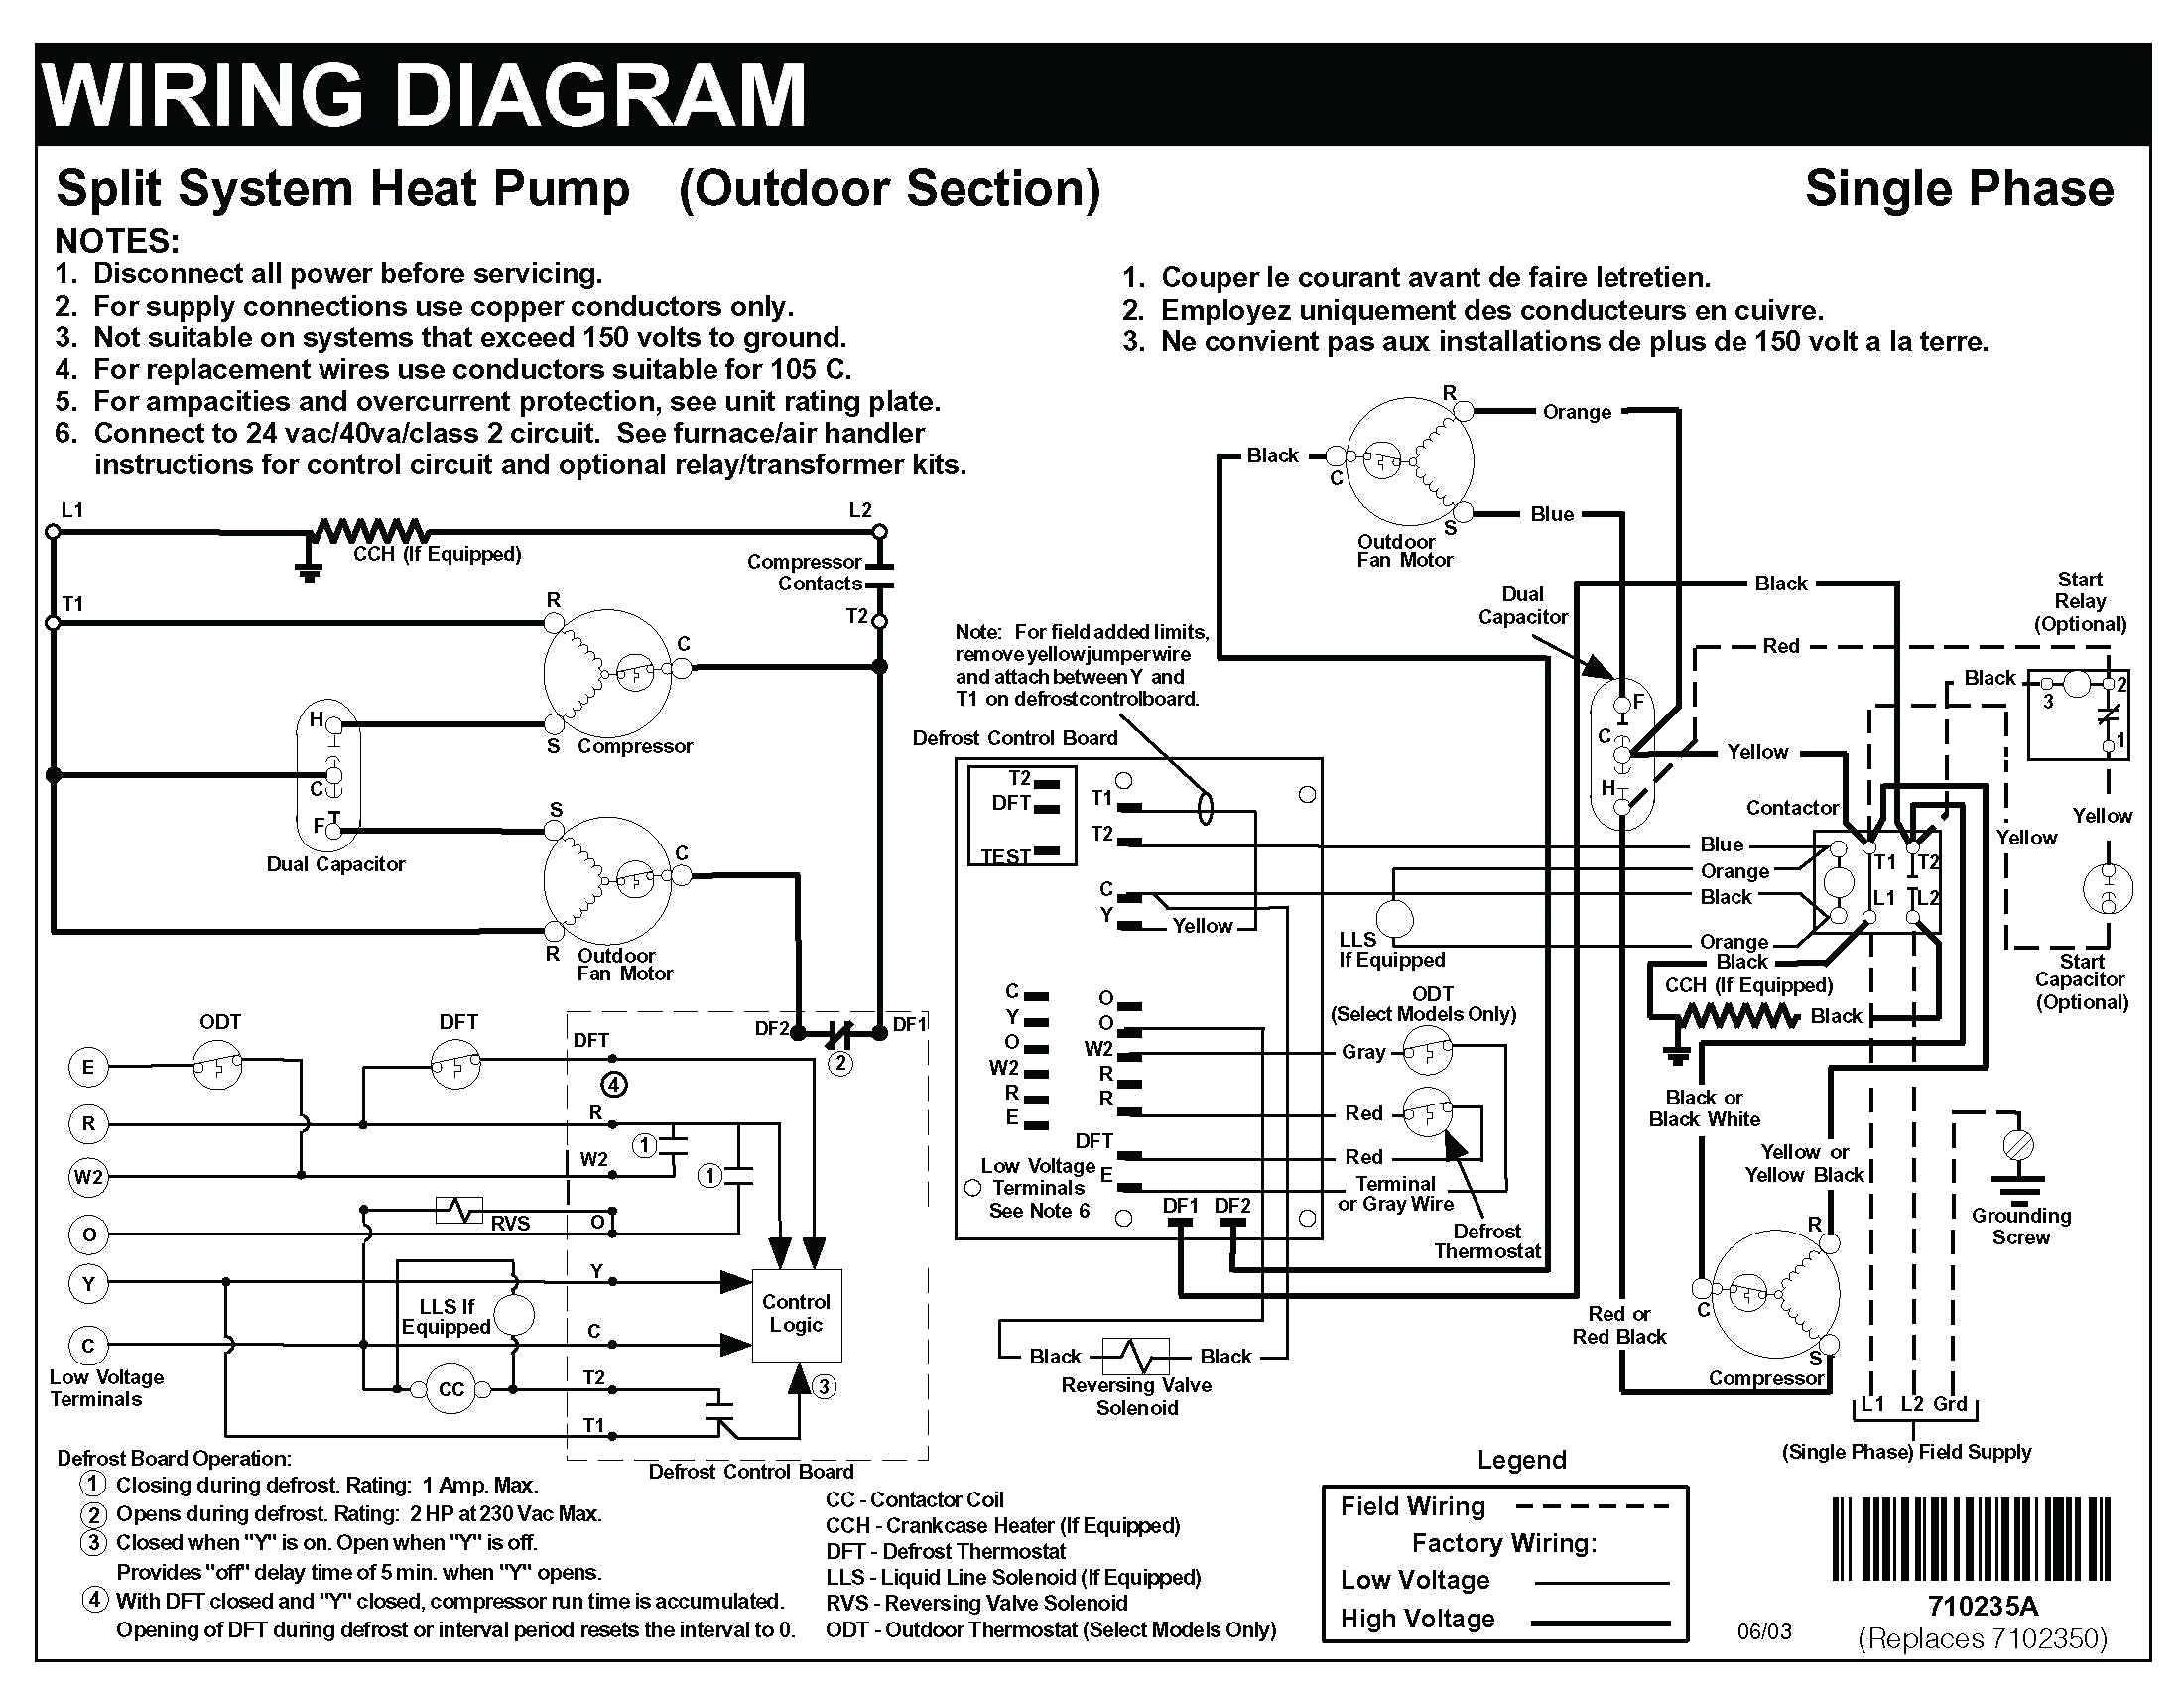 mobile home wiring diagram fresh troubleshooting 1961 ford generator of a at fresh honeywell thermostat th8321u1006